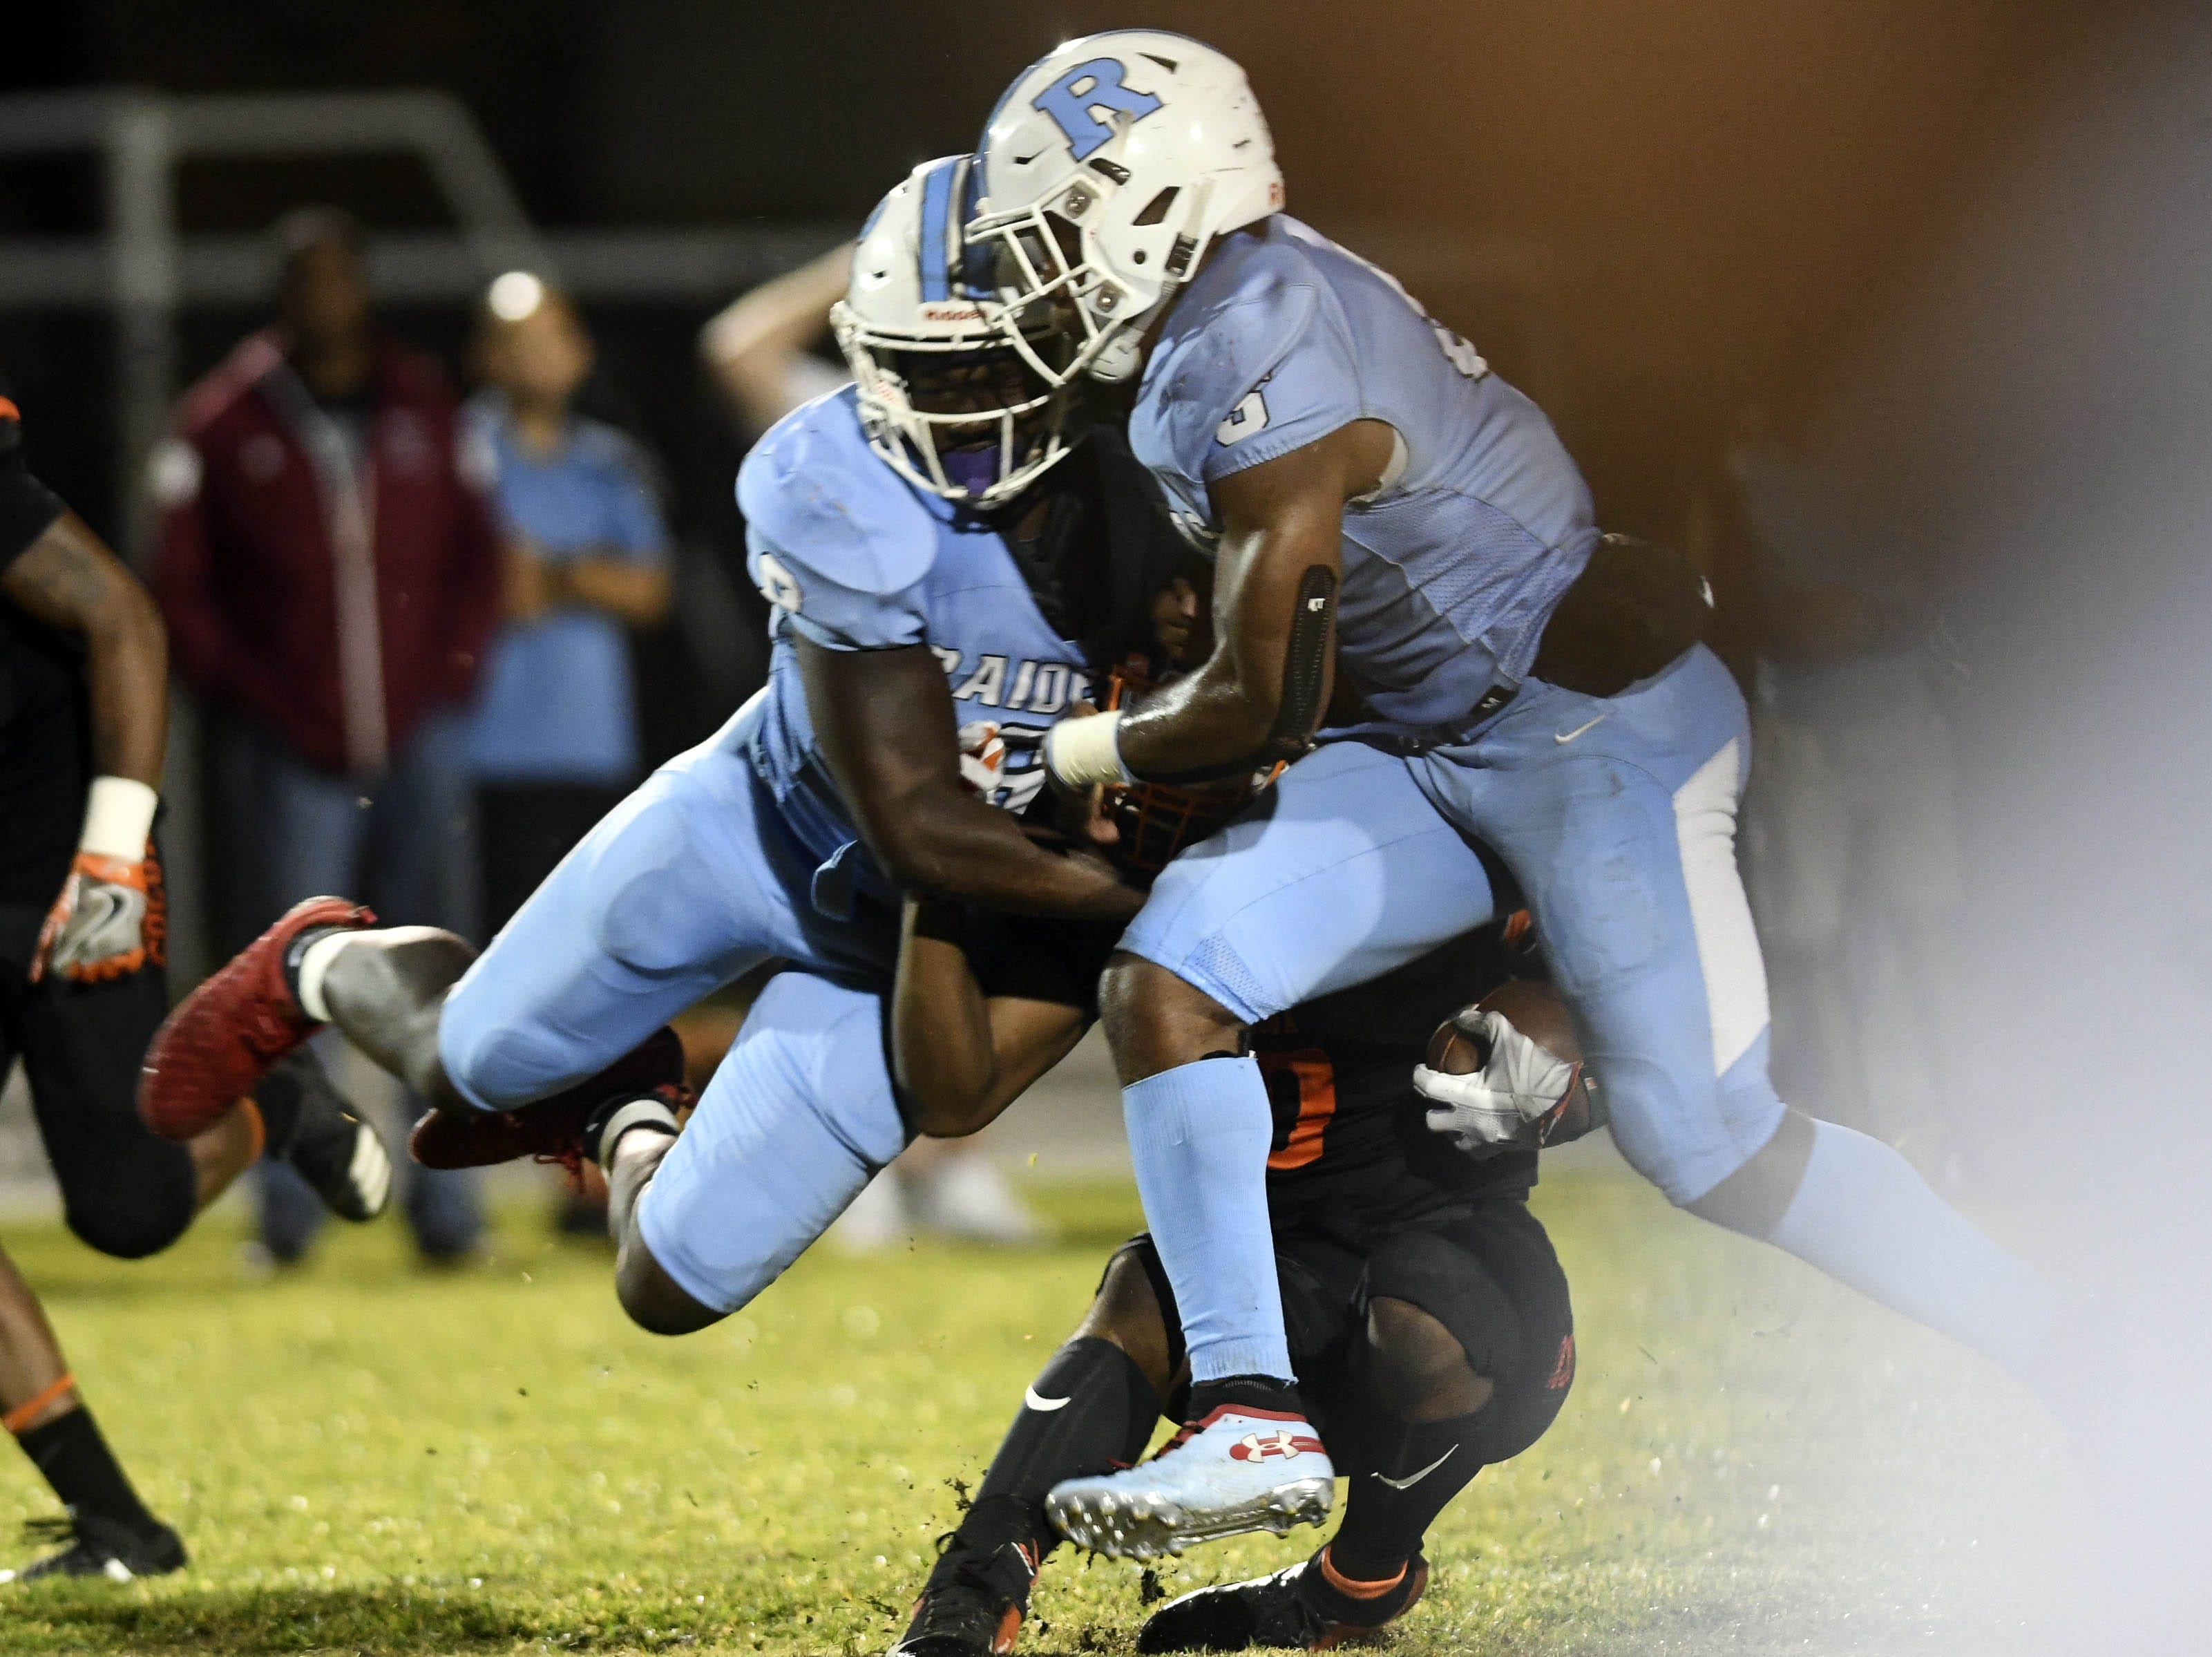 Caziah Holmes of Cocoa is tackled by OC Brothers and Jalen Mitchell during Friday's game.